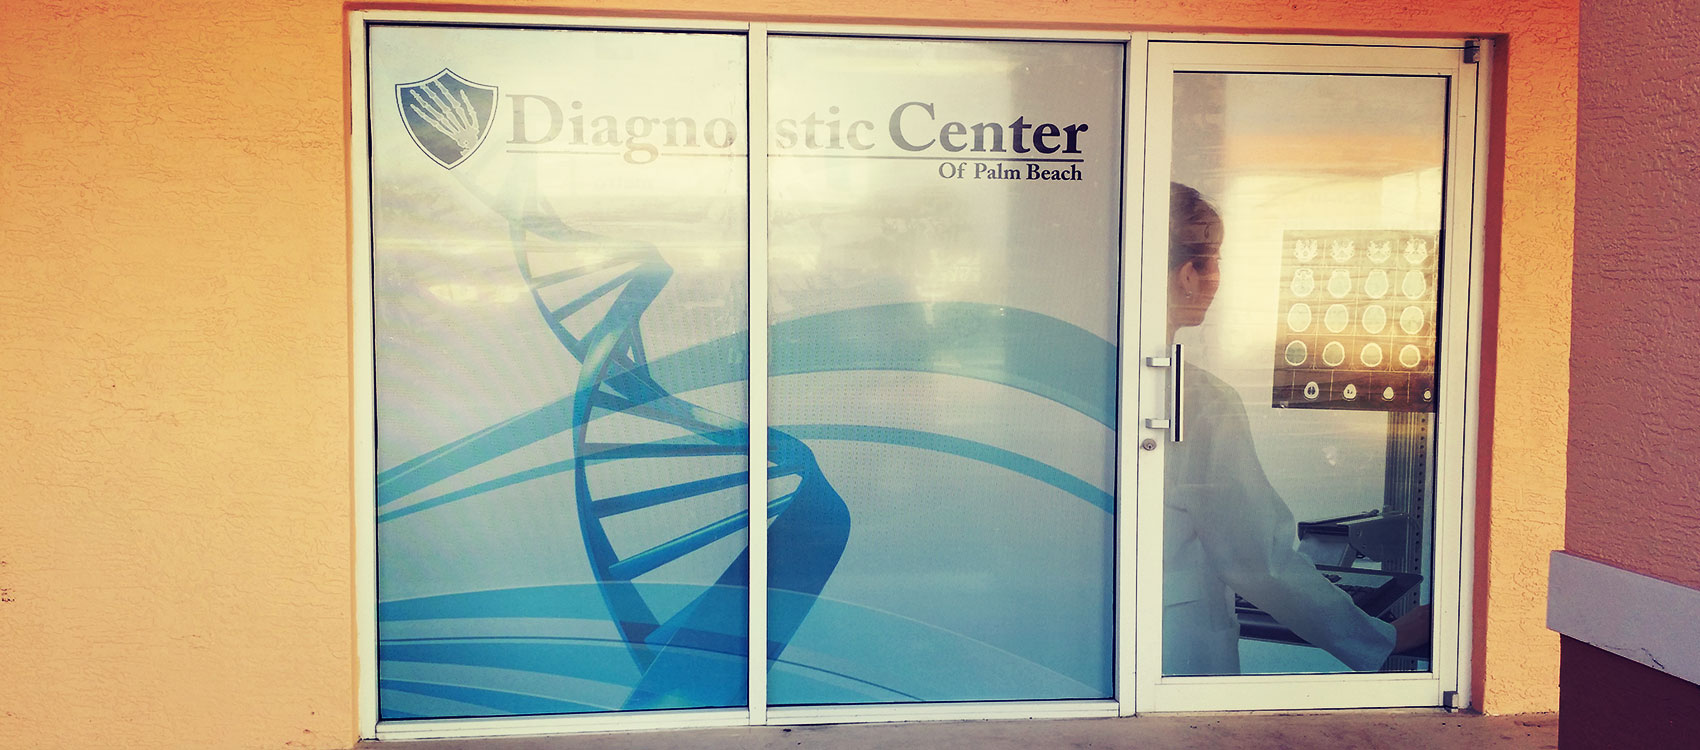 DIAGNOSTICCENTER